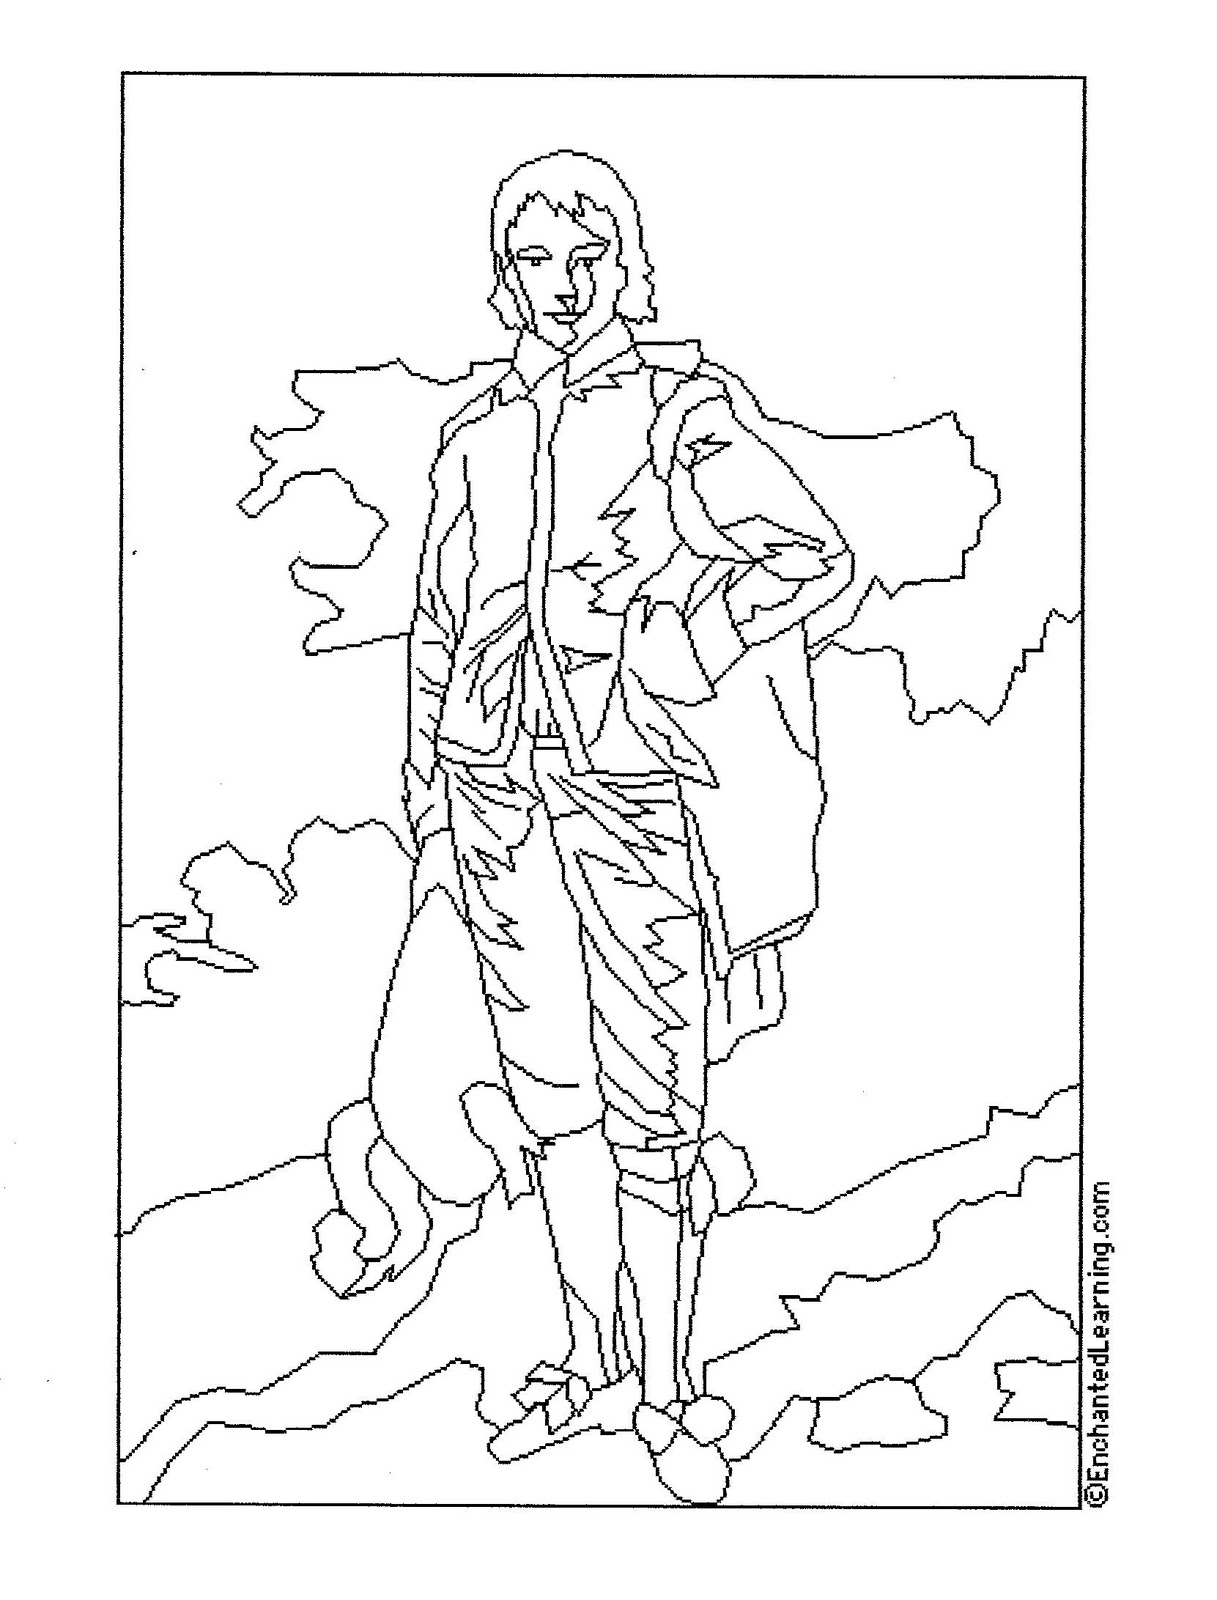 masterpiece coloring pages the top 10 coloring page masterpieces on the internet pages masterpiece coloring